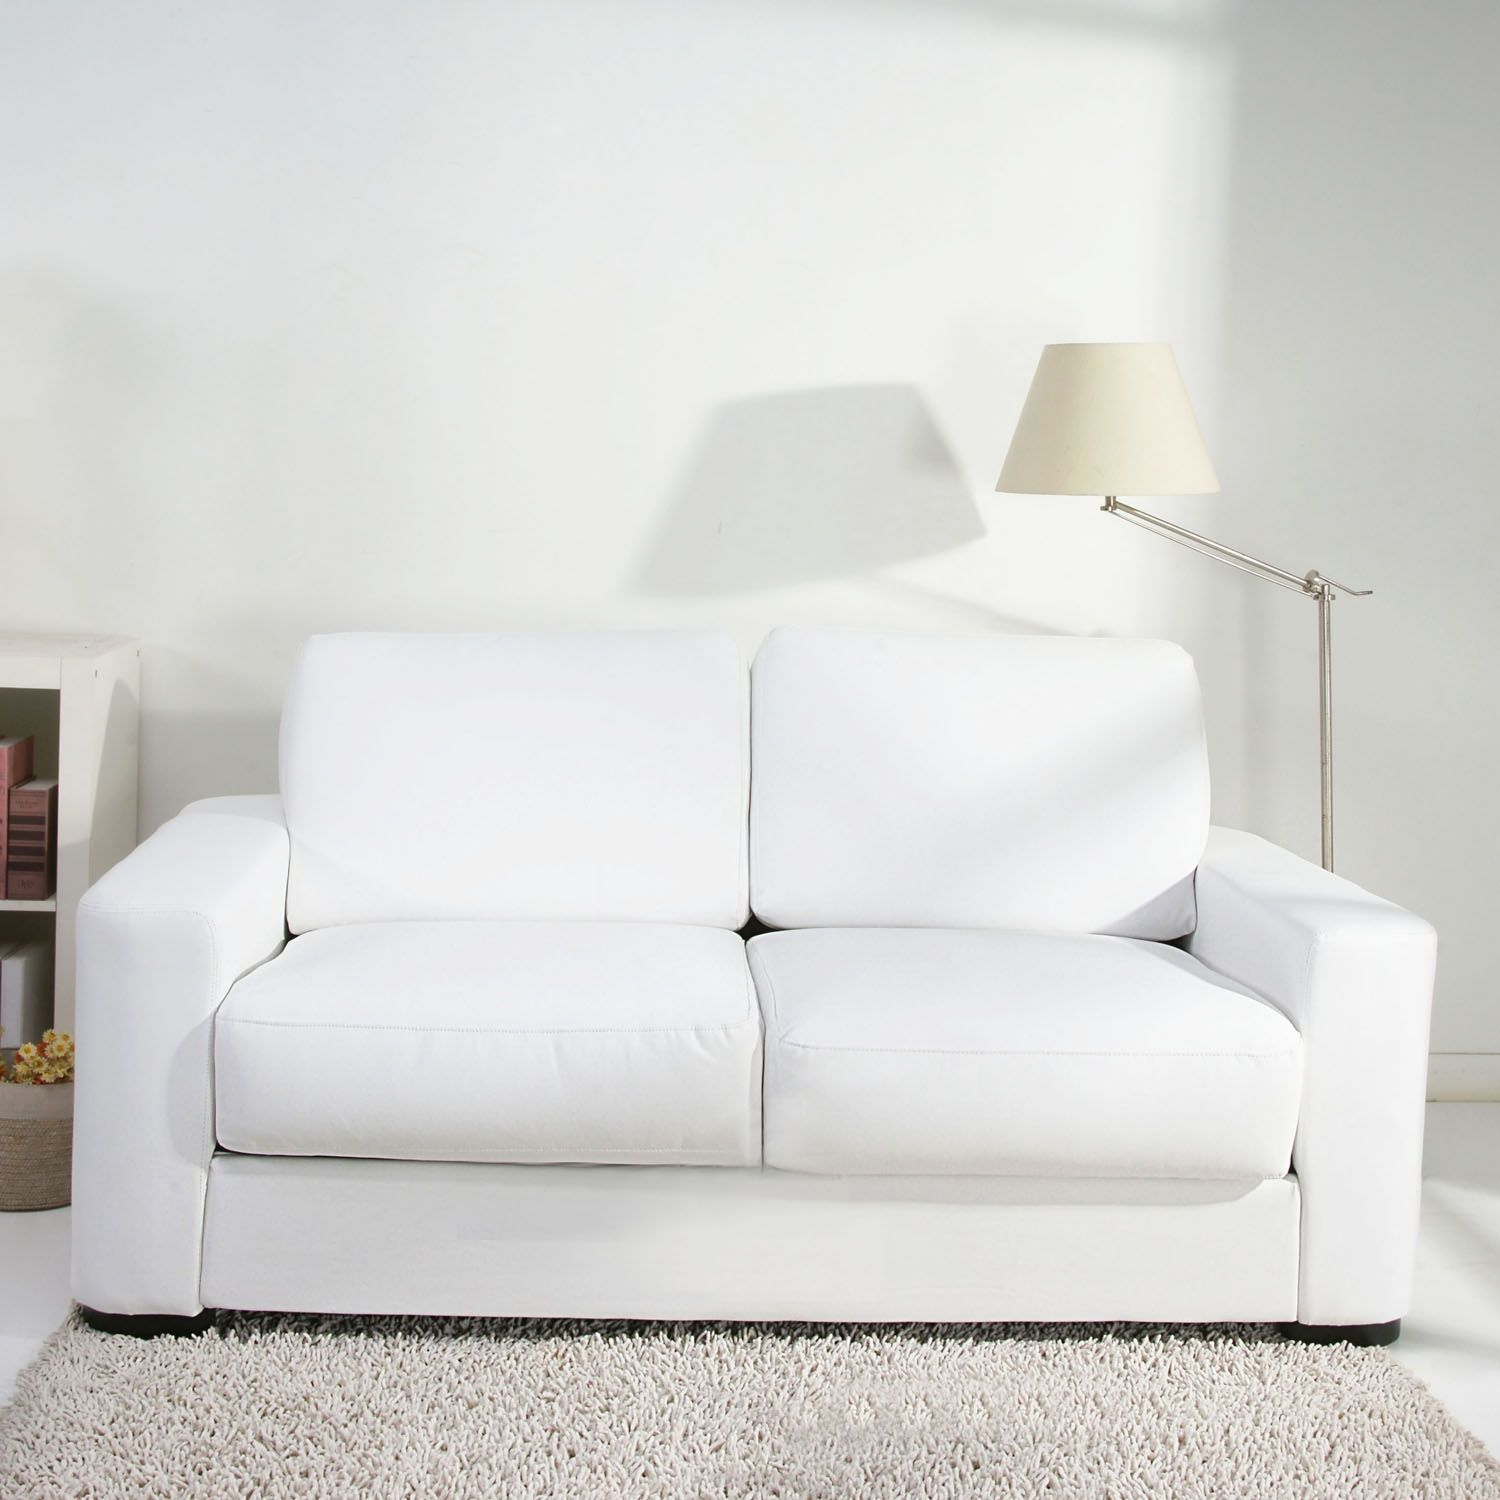 Small White Leather Sofa Bed White Leather Sofas White Leather Couch White Leather Sofa Bed